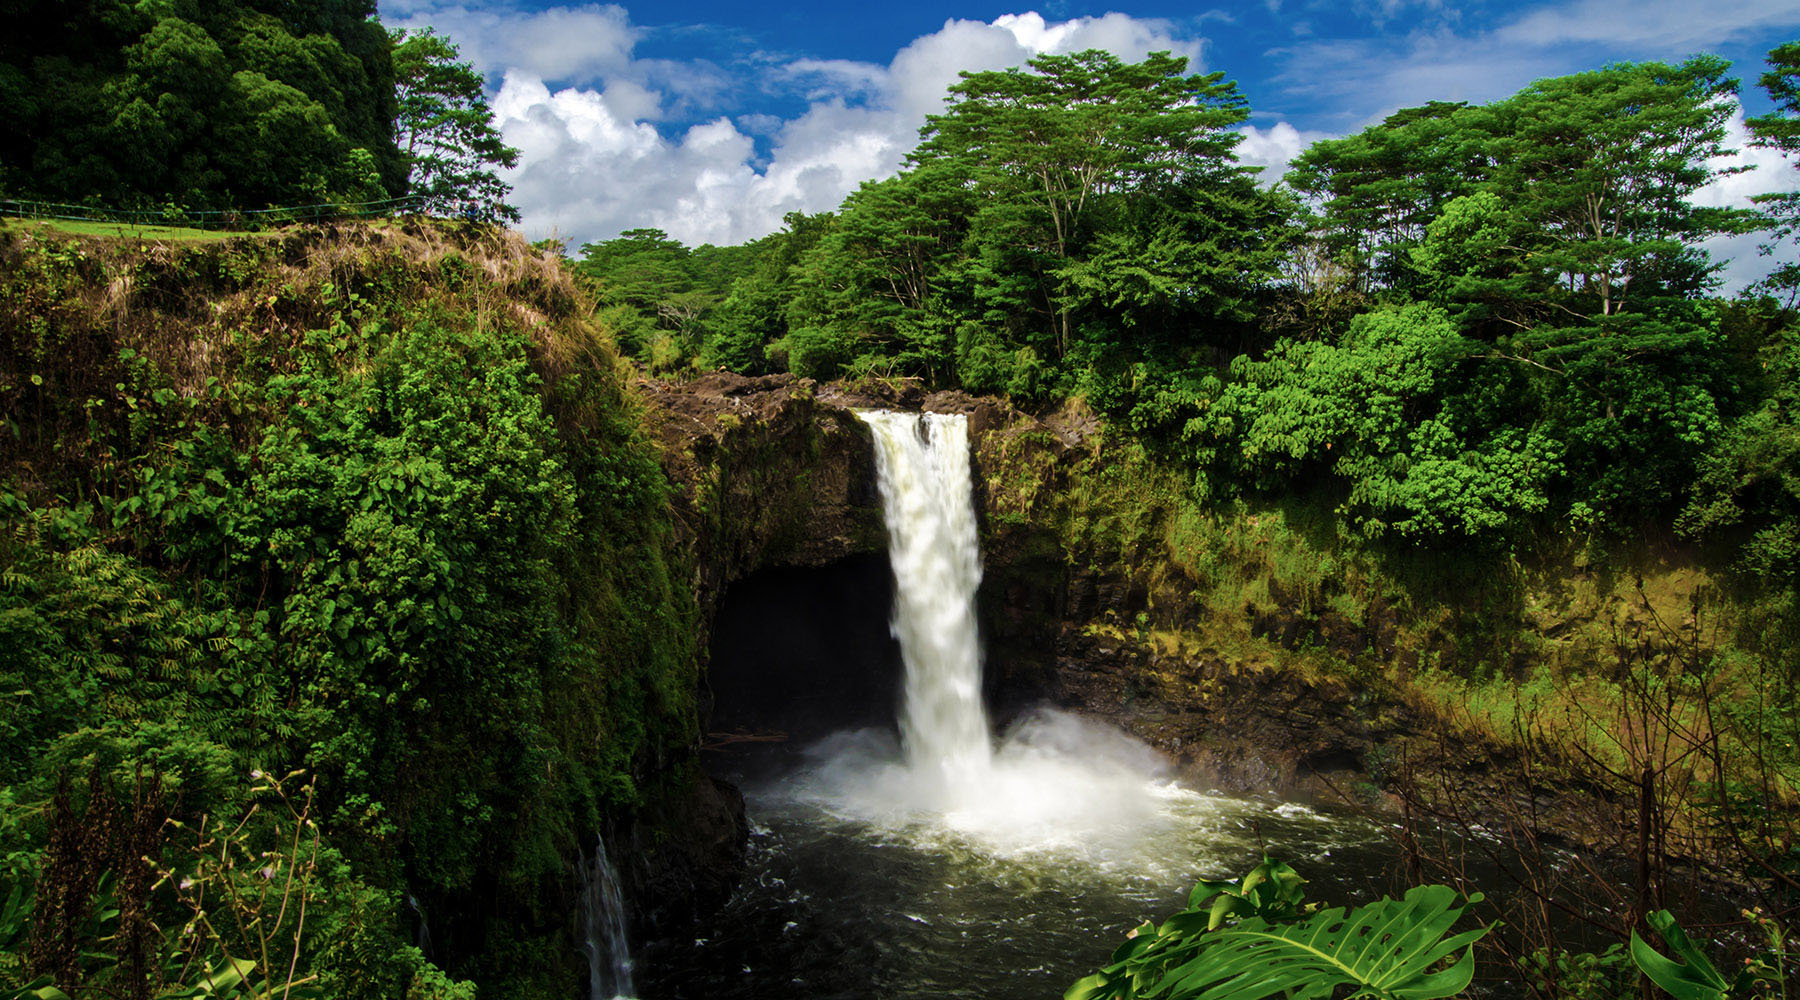 A waterfall in Hilo, Hawaii